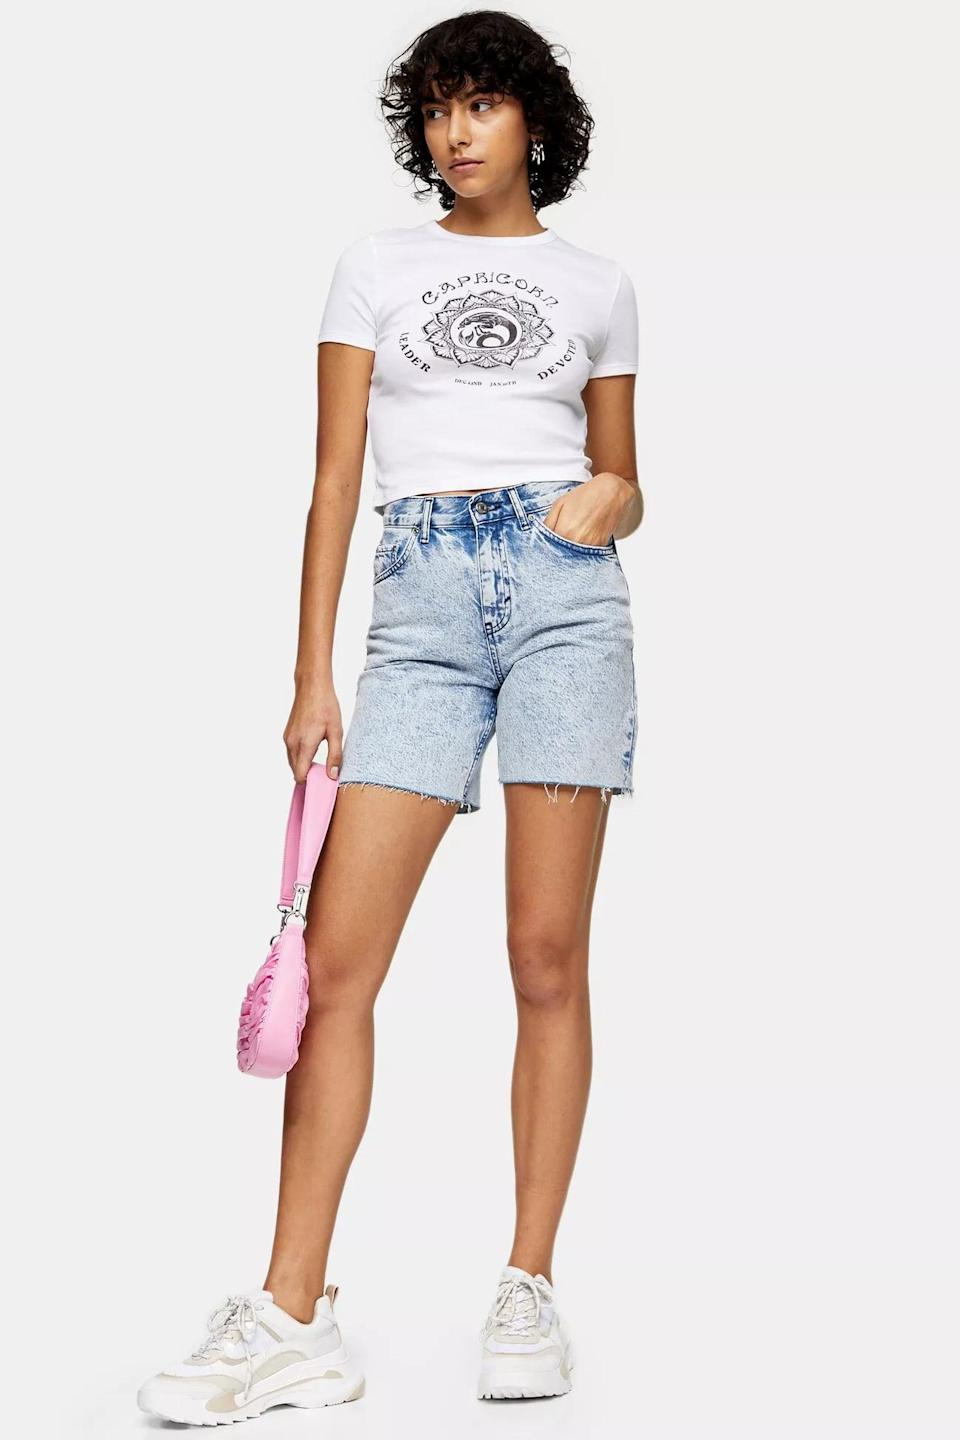 "<p>How cool are these <a href=""https://www.popsugar.com/buy/Topshop-Acid-Wash-Mid-Rise-Denim-Shorts-582004?p_name=Topshop%20Acid%20Wash%20Mid%20Rise%20Denim%20Shorts&retailer=us.topshop.com&pid=582004&price=65&evar1=fab%3Aus&evar9=35329485&evar98=https%3A%2F%2Fwww.popsugar.com%2Ffashion%2Fphoto-gallery%2F35329485%2Fimage%2F47550210%2FTopshop-Acid-Wash-Mid-Rise-Denim-Shorts&list1=shopping%2Cdenim%2Csummer%20fashion%2Cfashion%20shopping&prop13=mobile&pdata=1"" class=""link rapid-noclick-resp"" rel=""nofollow noopener"" target=""_blank"" data-ylk=""slk:Topshop Acid Wash Mid Rise Denim Shorts"">Topshop Acid Wash Mid Rise Denim Shorts</a> ($65)?</p>"